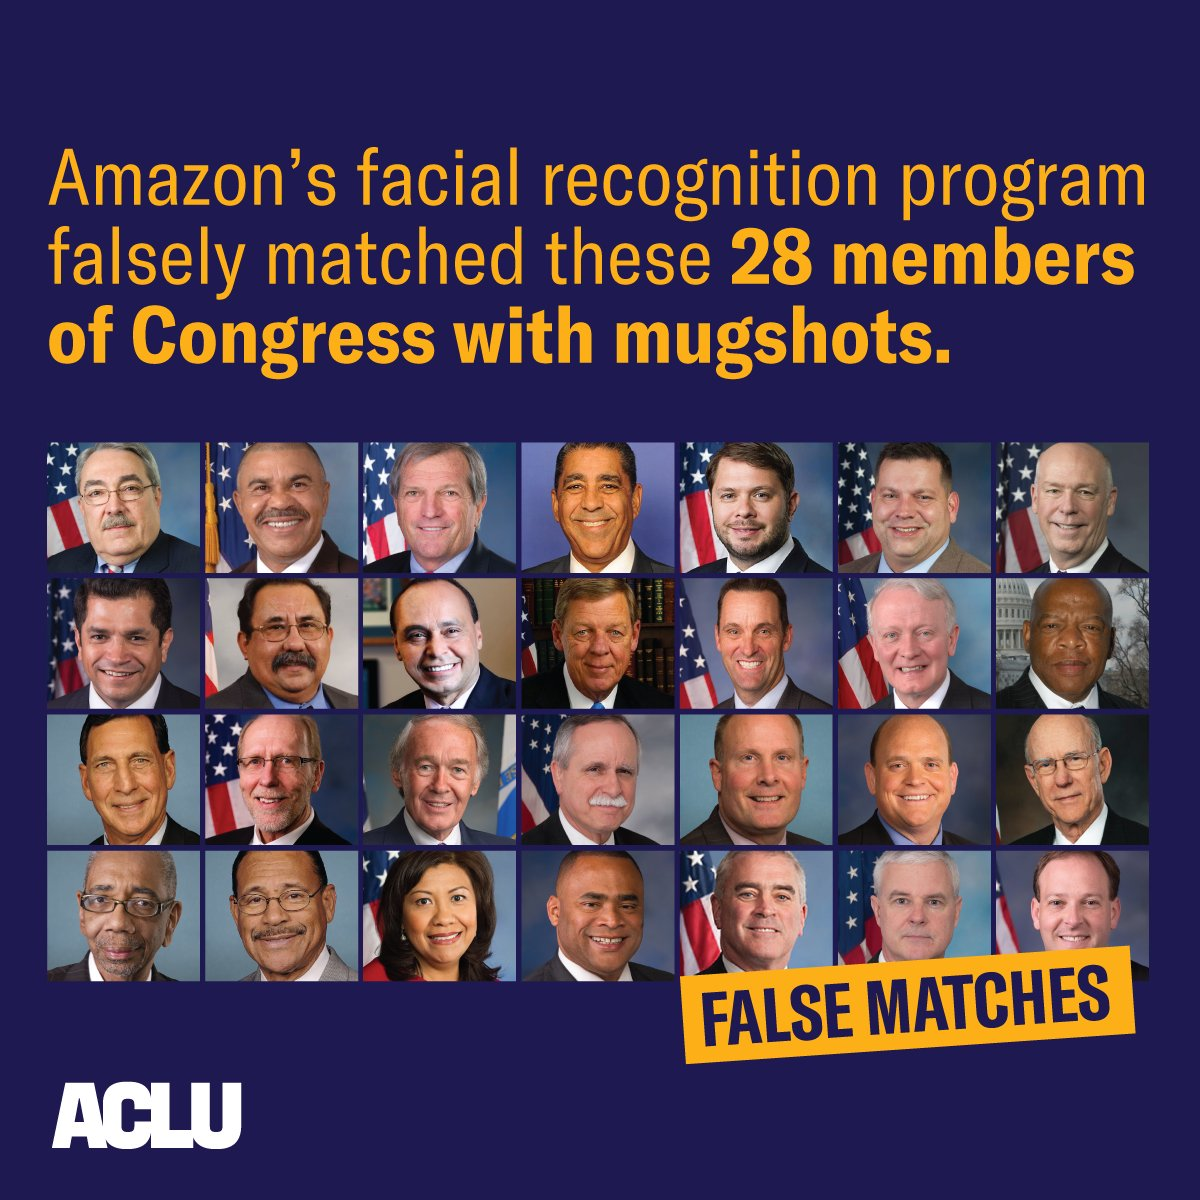 Facial recognition is not fit for law enforcement use. Just ask them �� https://t.co/8lfUIalJCc